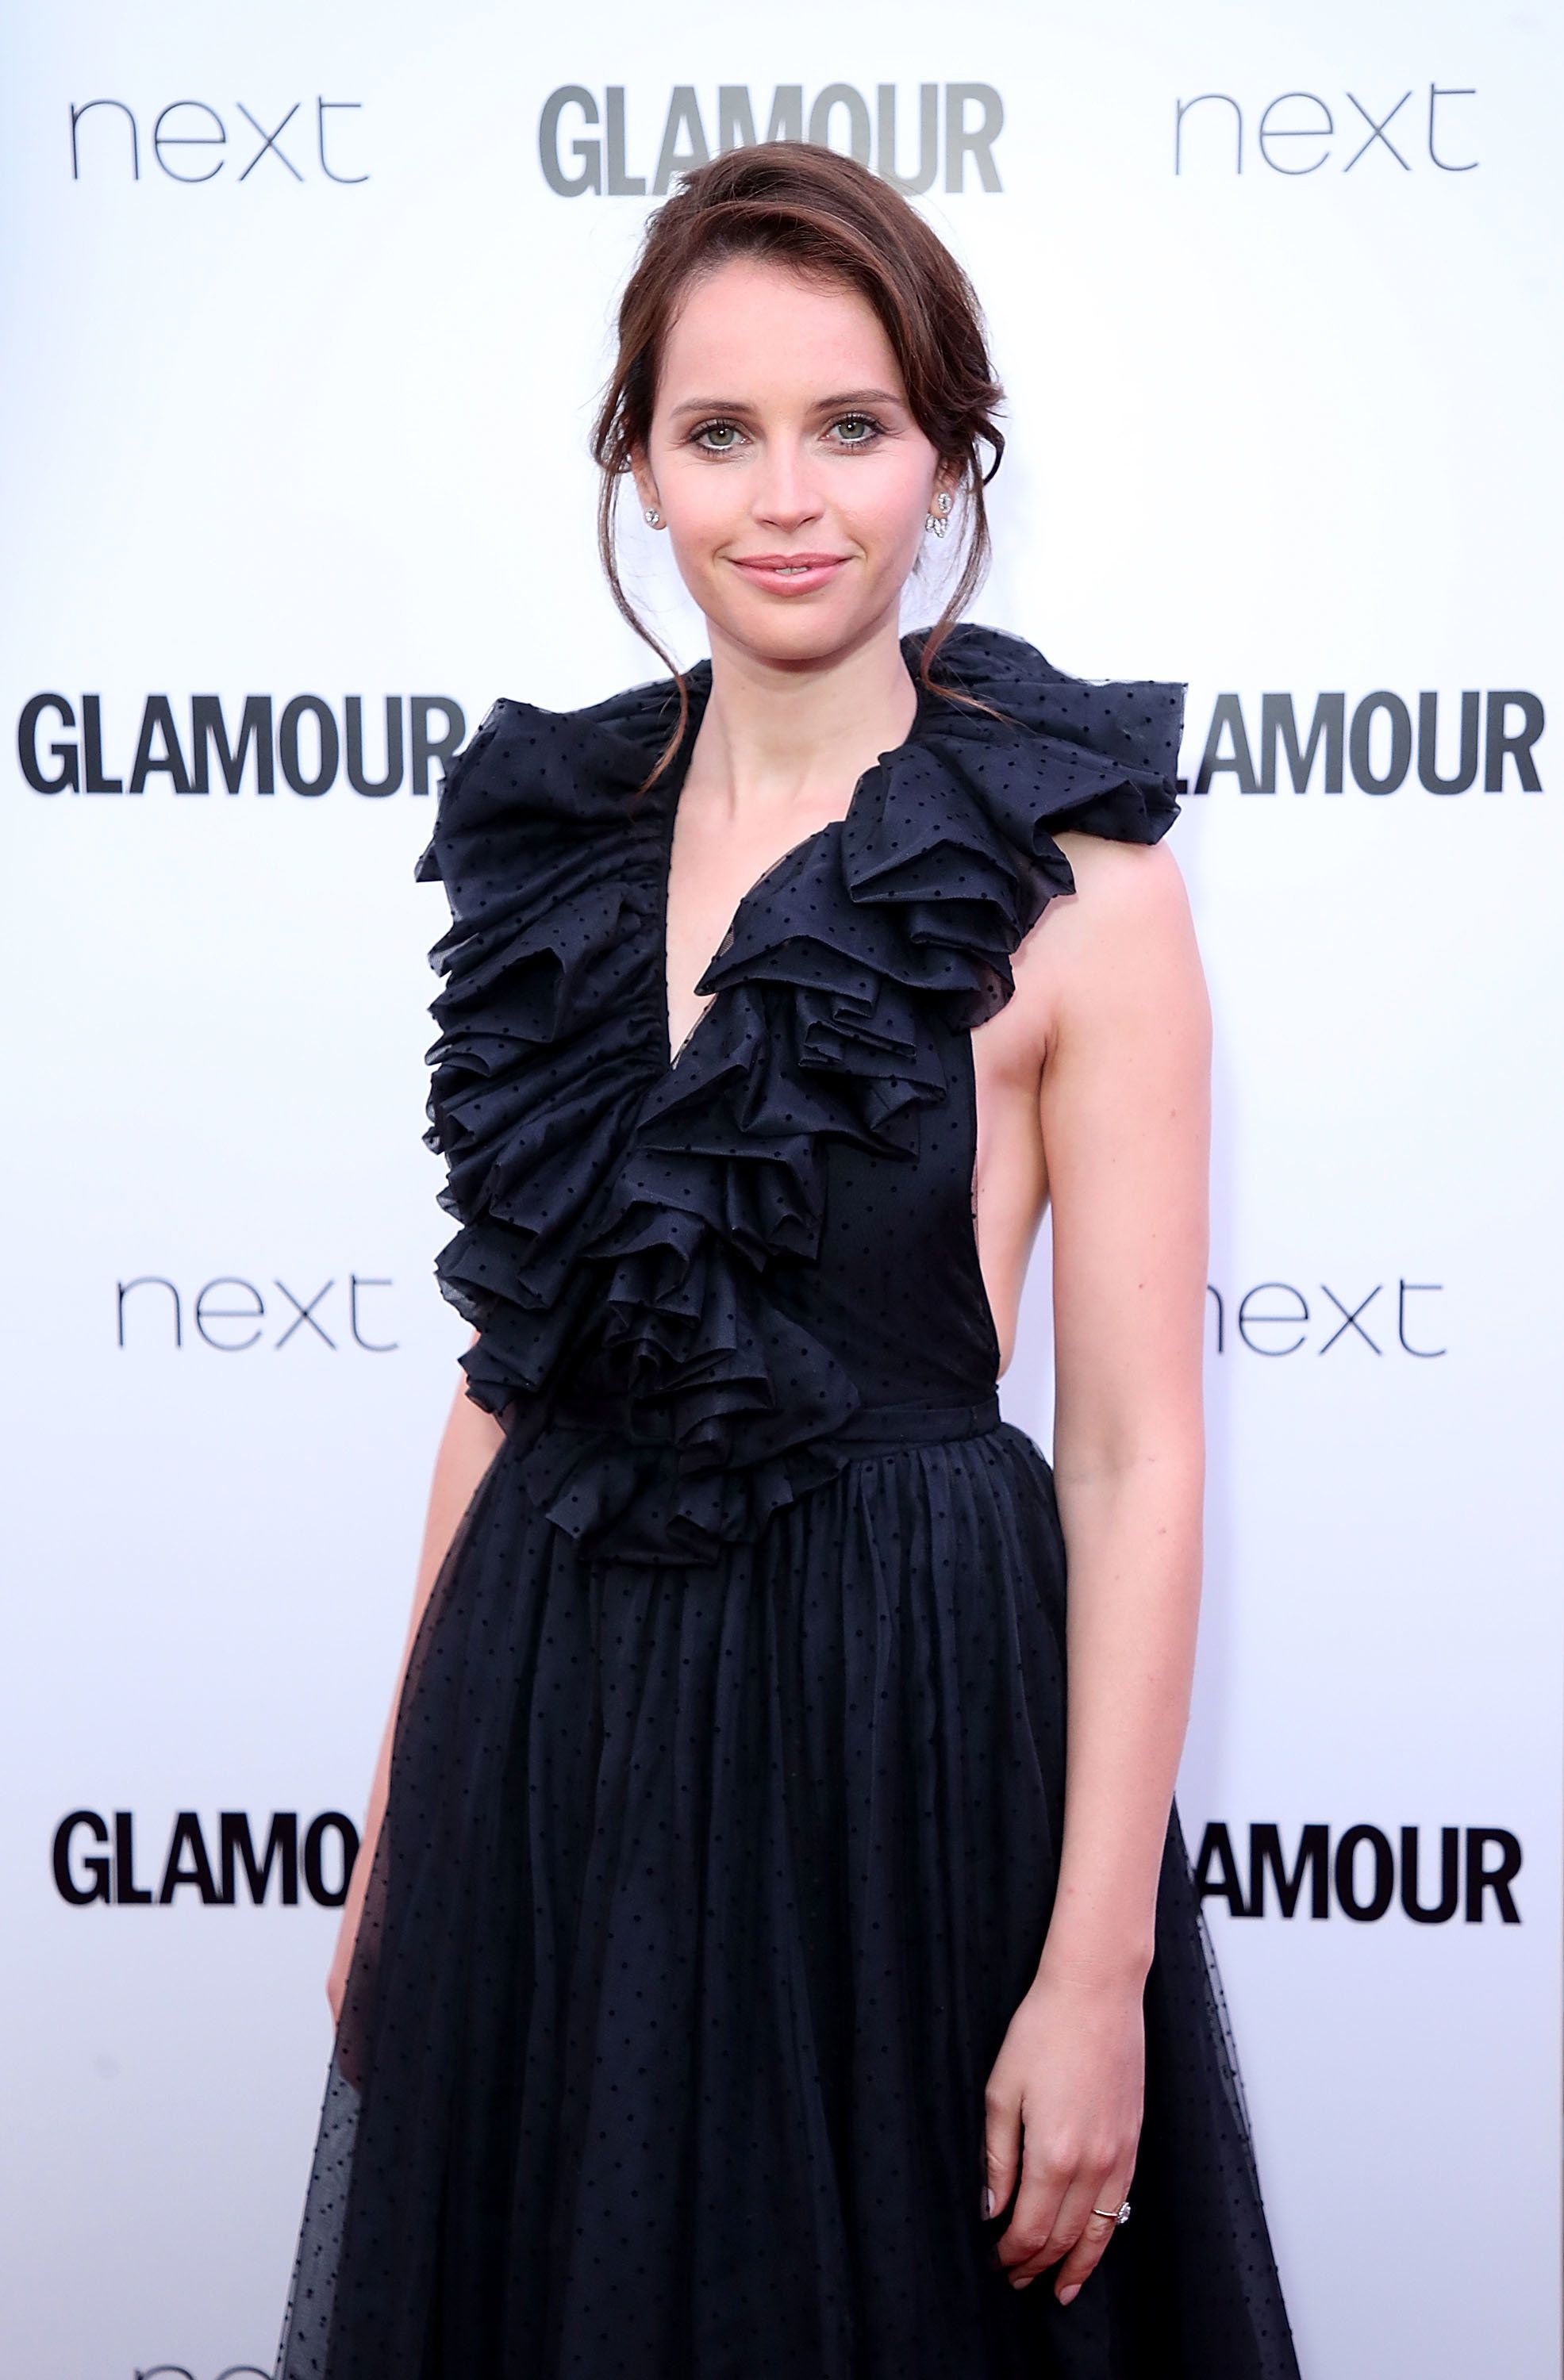 Felicity Jones Dazzles Us With Her 'Engagement Ring' On The Red